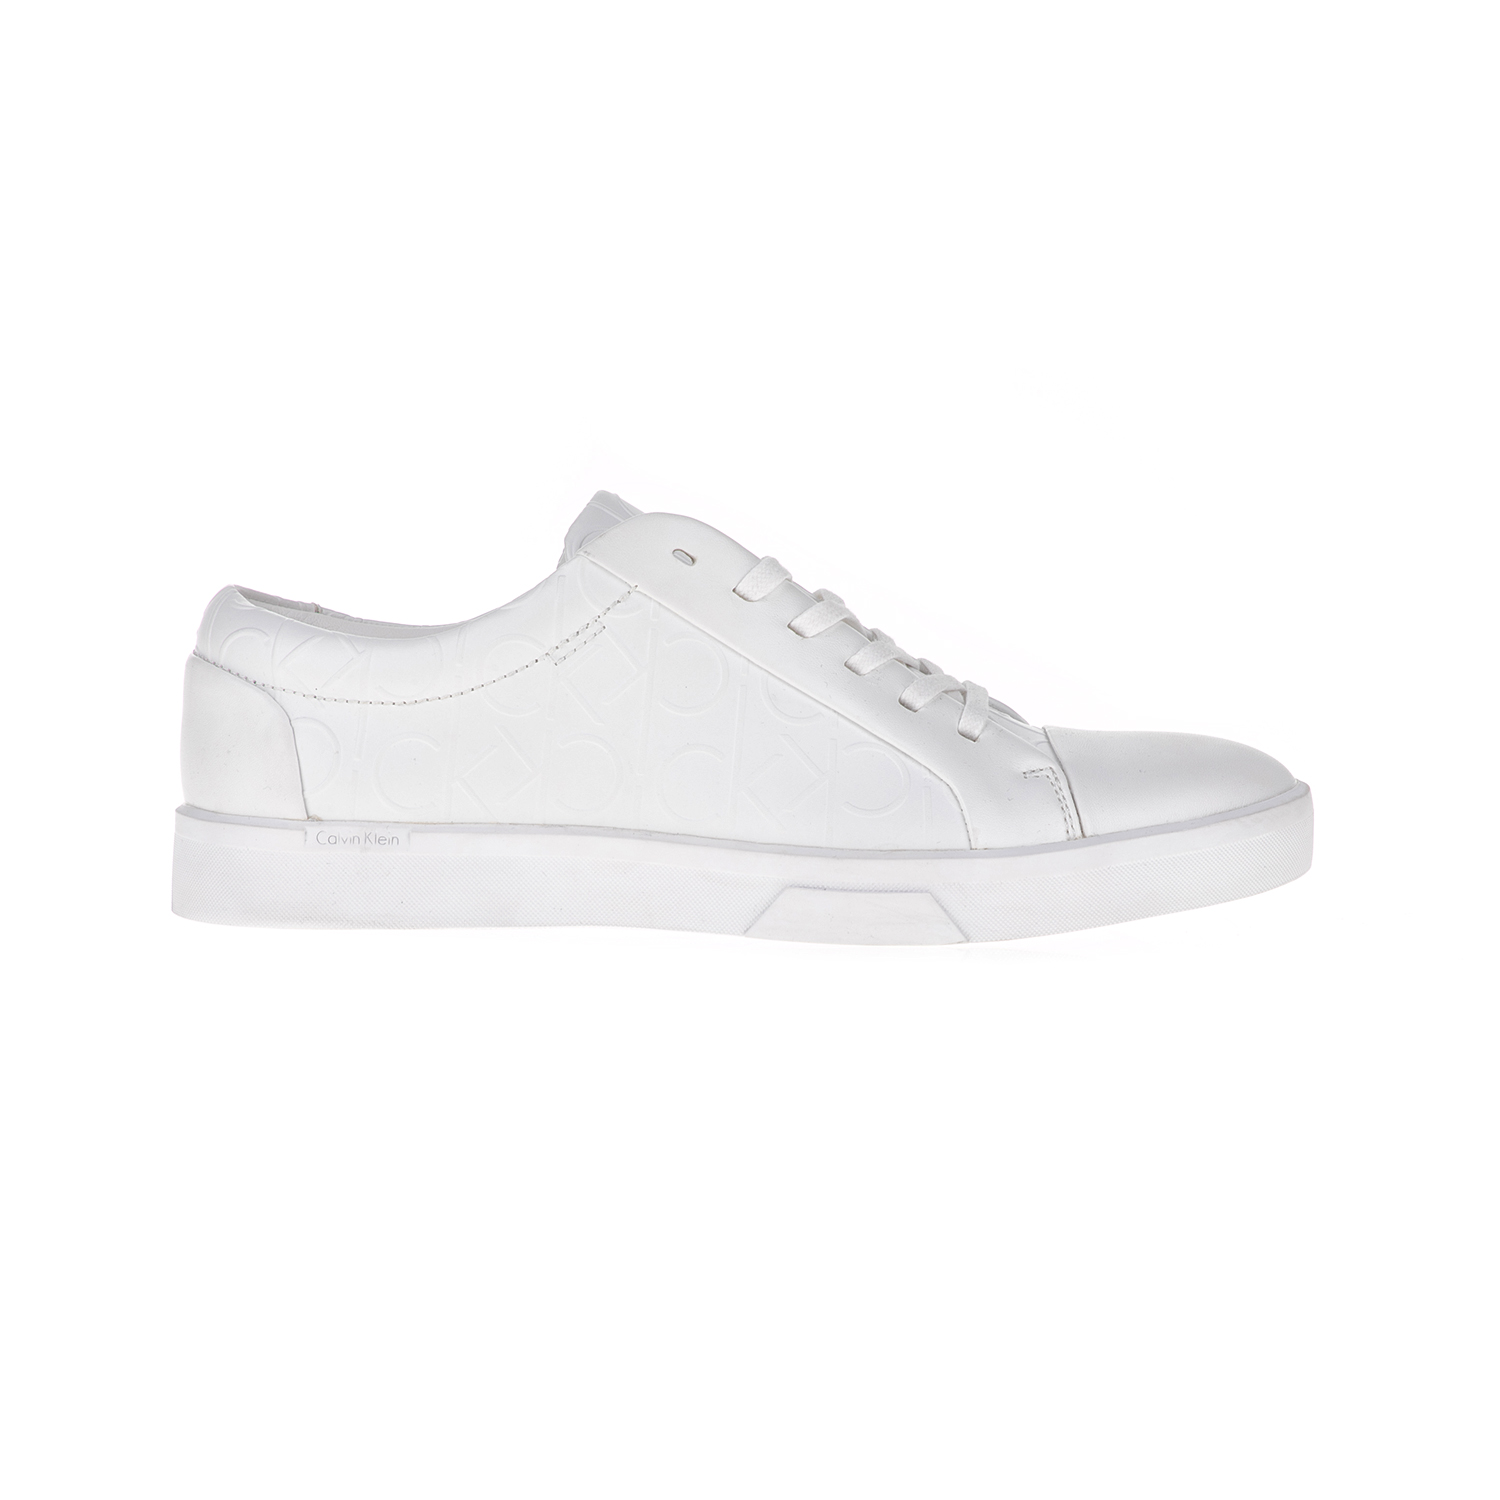 bdd4272f49b -40% Factory Outlet CALVIN KLEIN JEANS – Ανδρικά sneakers IGOR λευκά